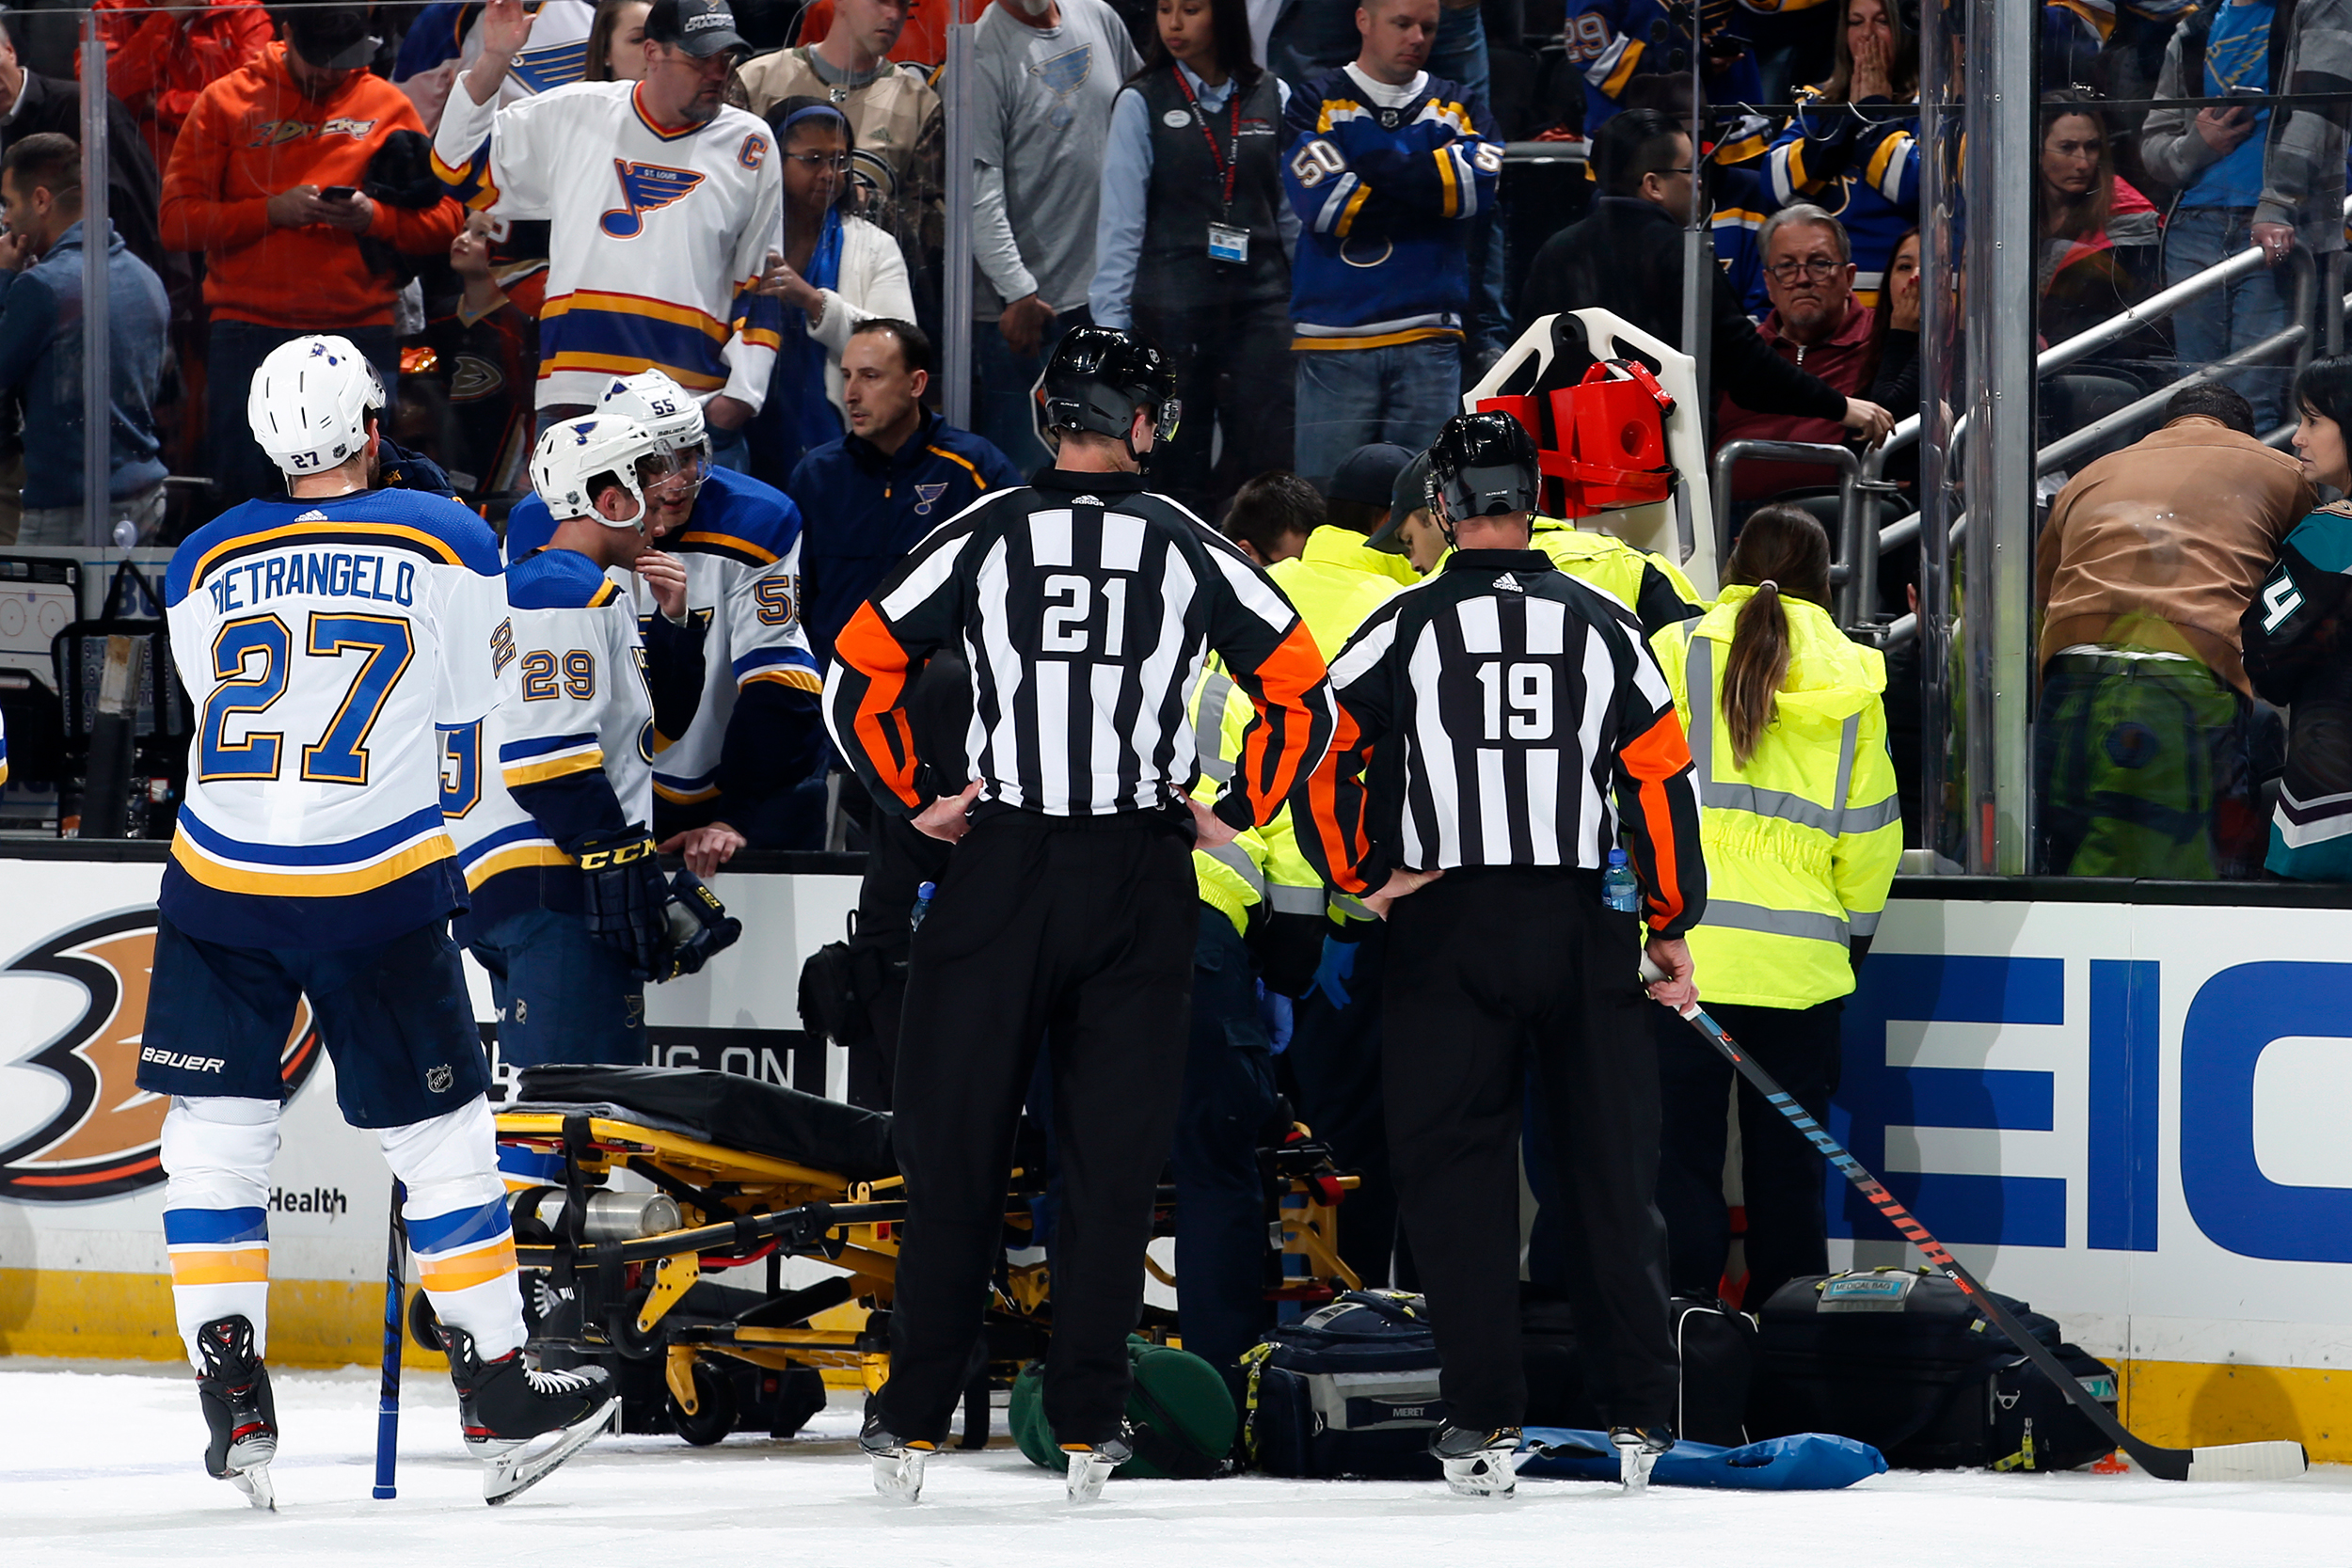 St. Louis Blues defenseman Jay Bouwmeester undergoes successful ICD procedure after cardiac episode